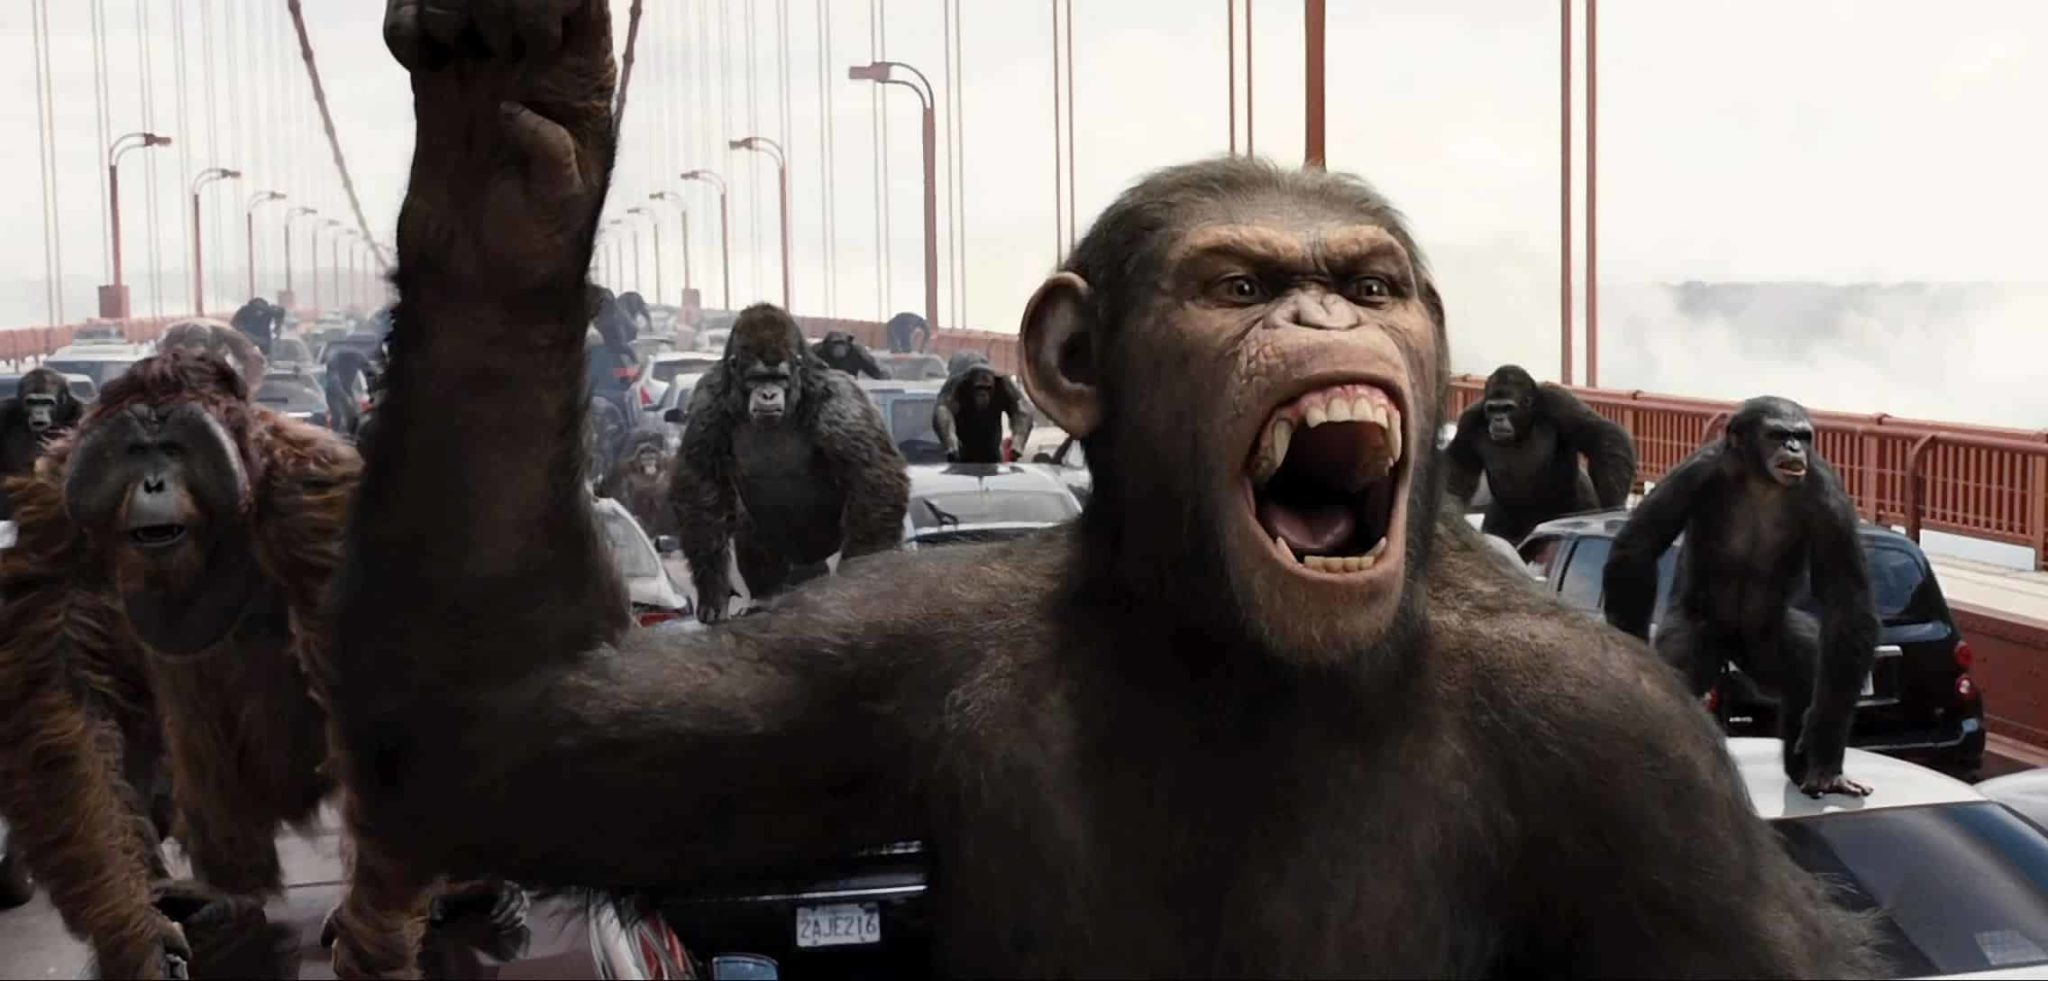 escenas-post-creditos-Rise_of_the_Planet_of_the_Apes